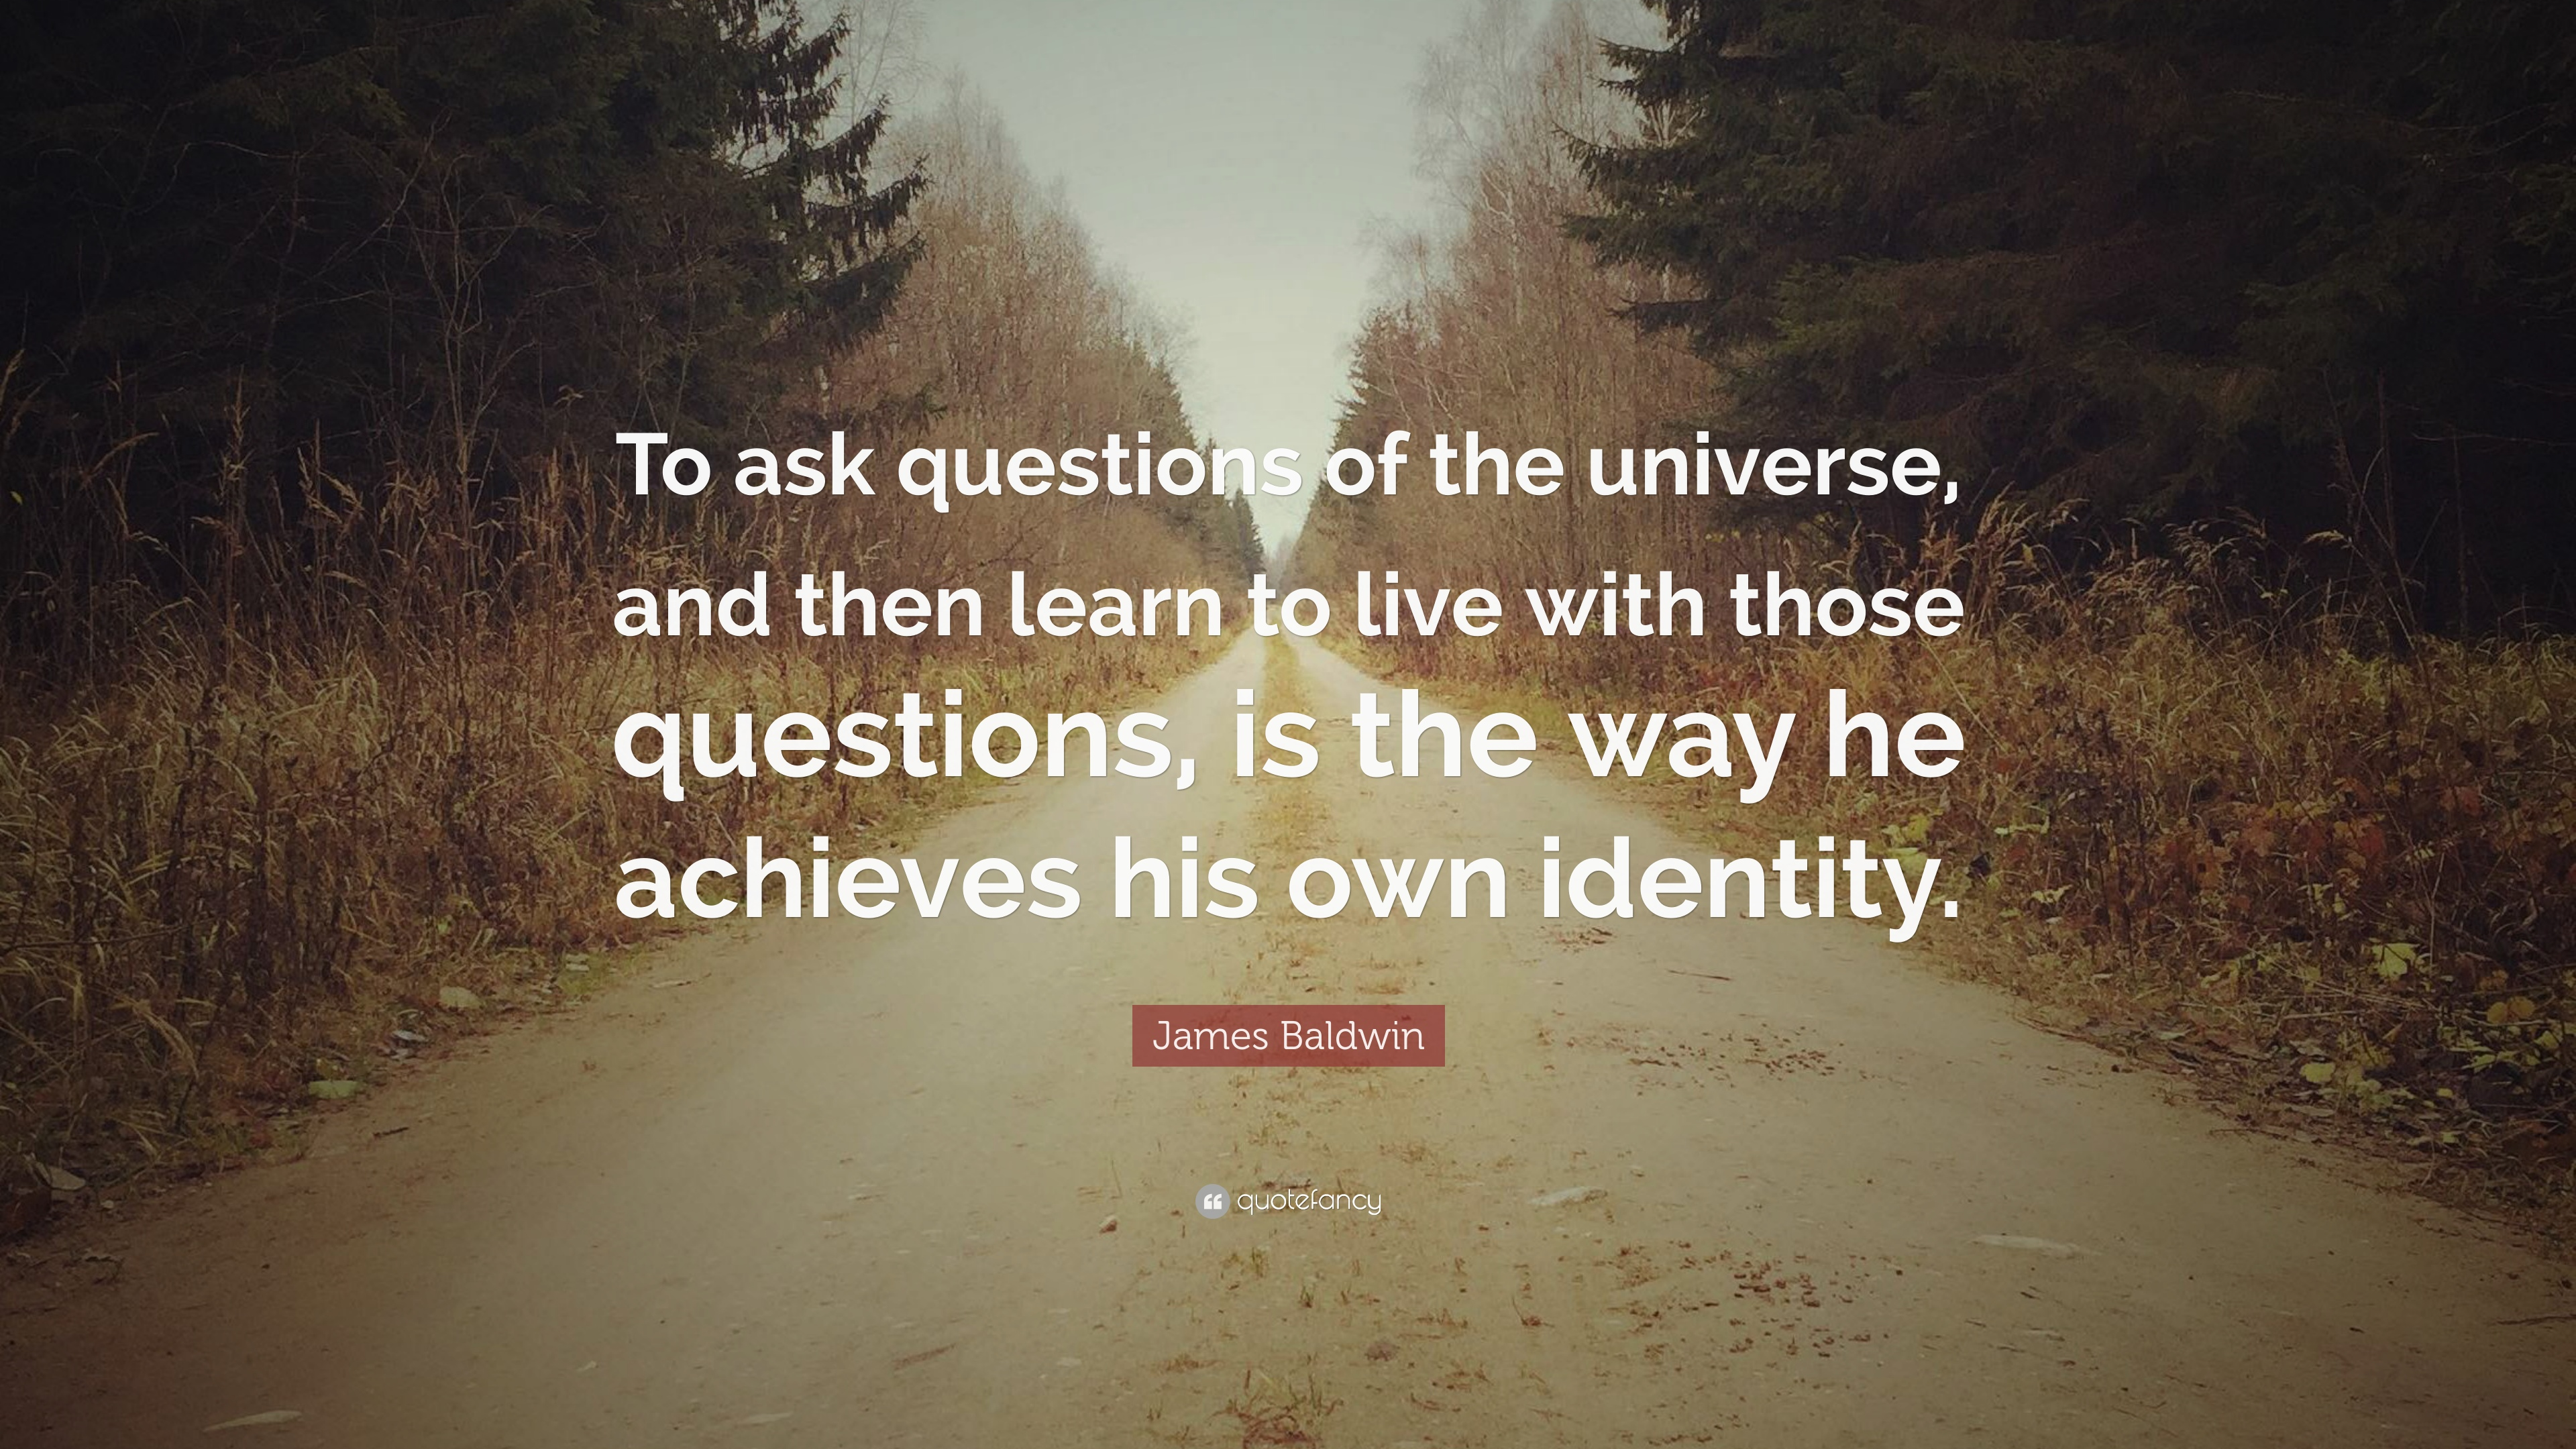 james baldwin quote to ask questions of the universe and then